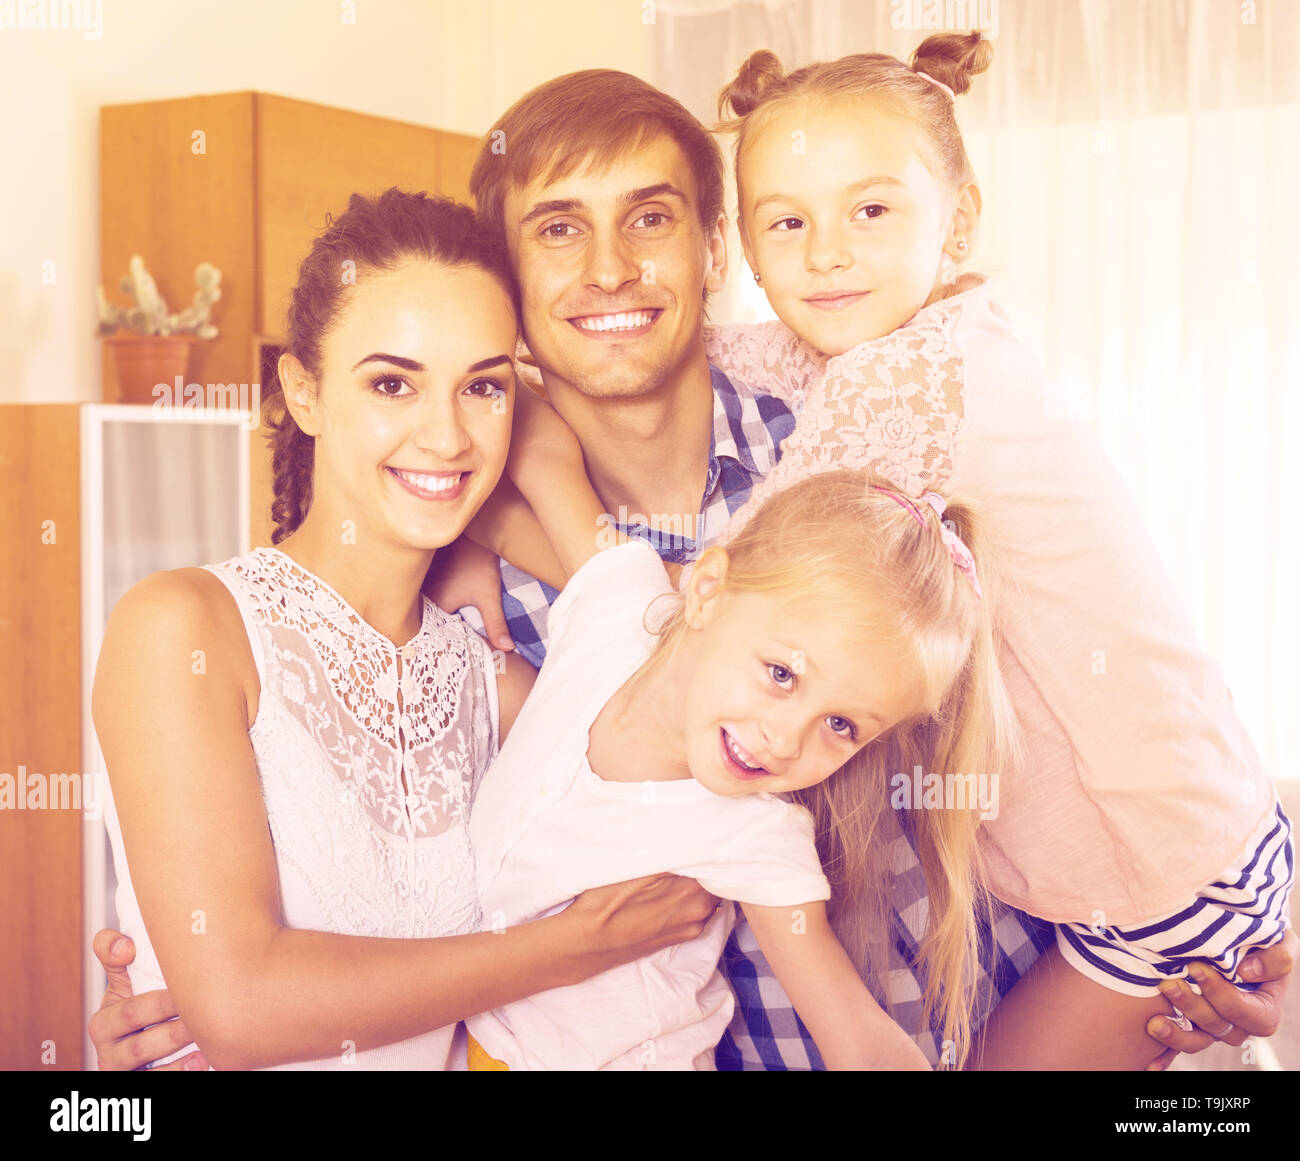 Family values: portrait of russian parents with little girls indoors - Stock Image